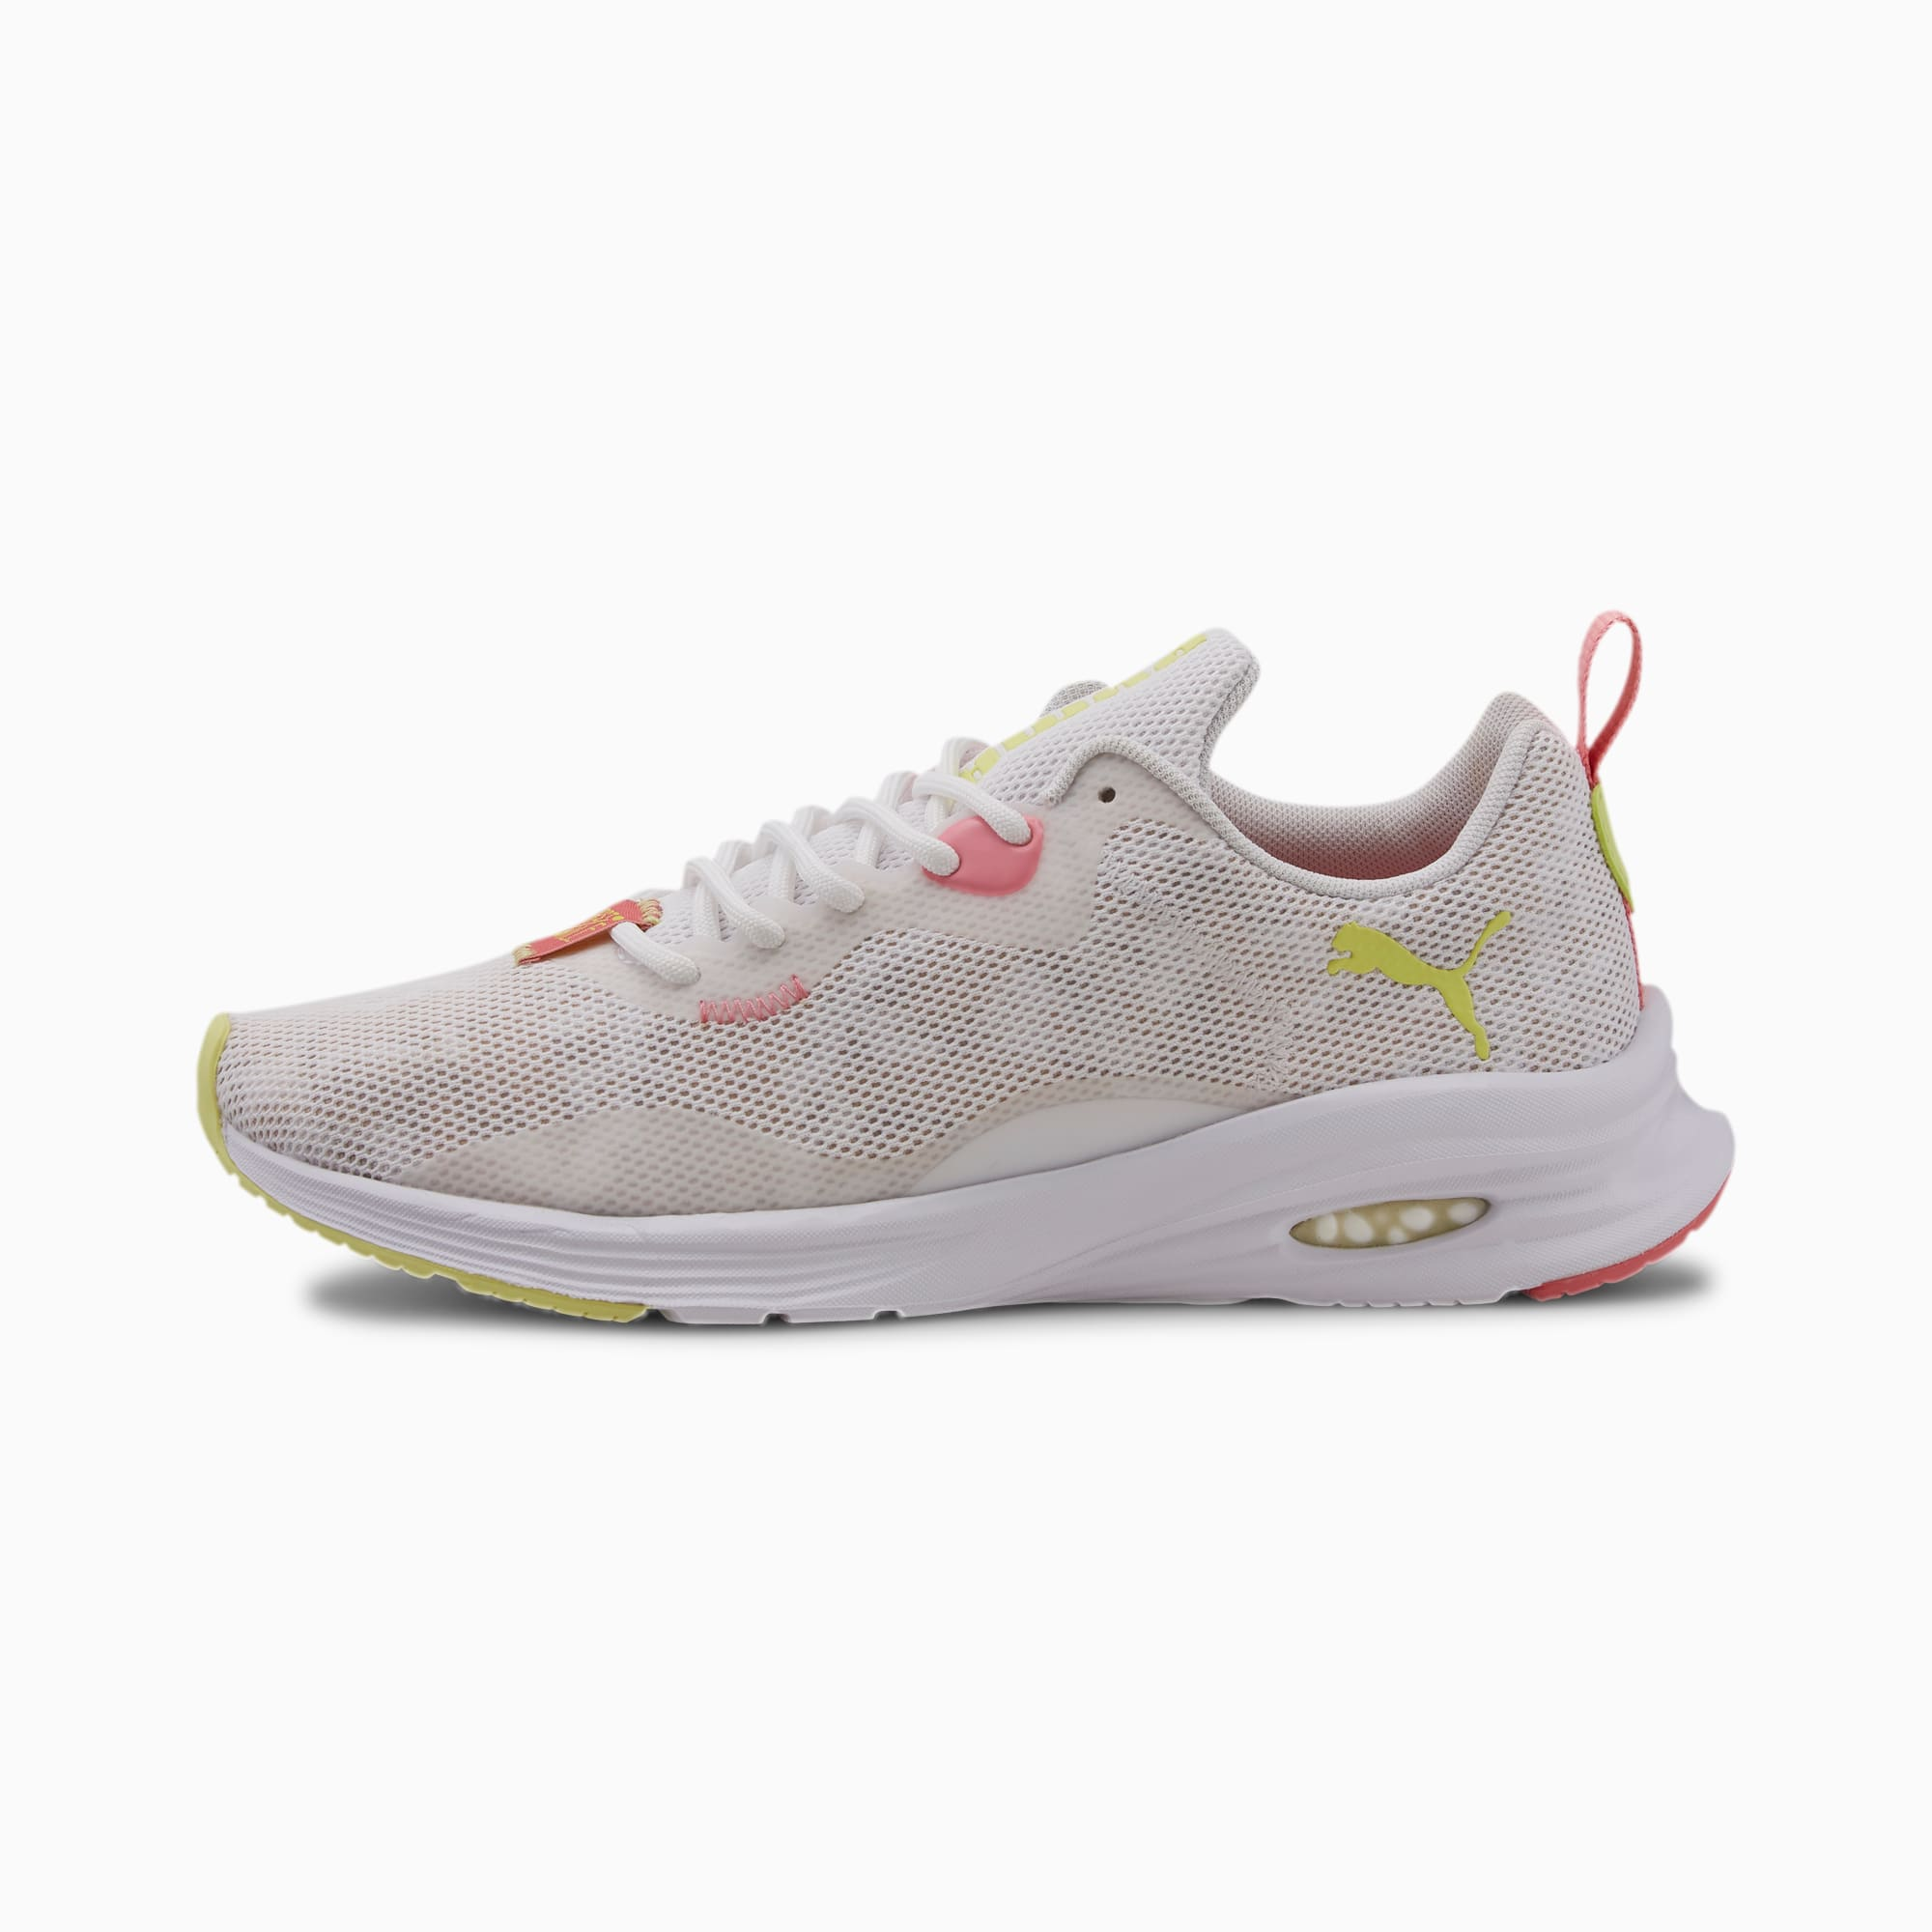 PUMA x FIRST MILE HYBRID Fuego Camo Women's Running Shoes